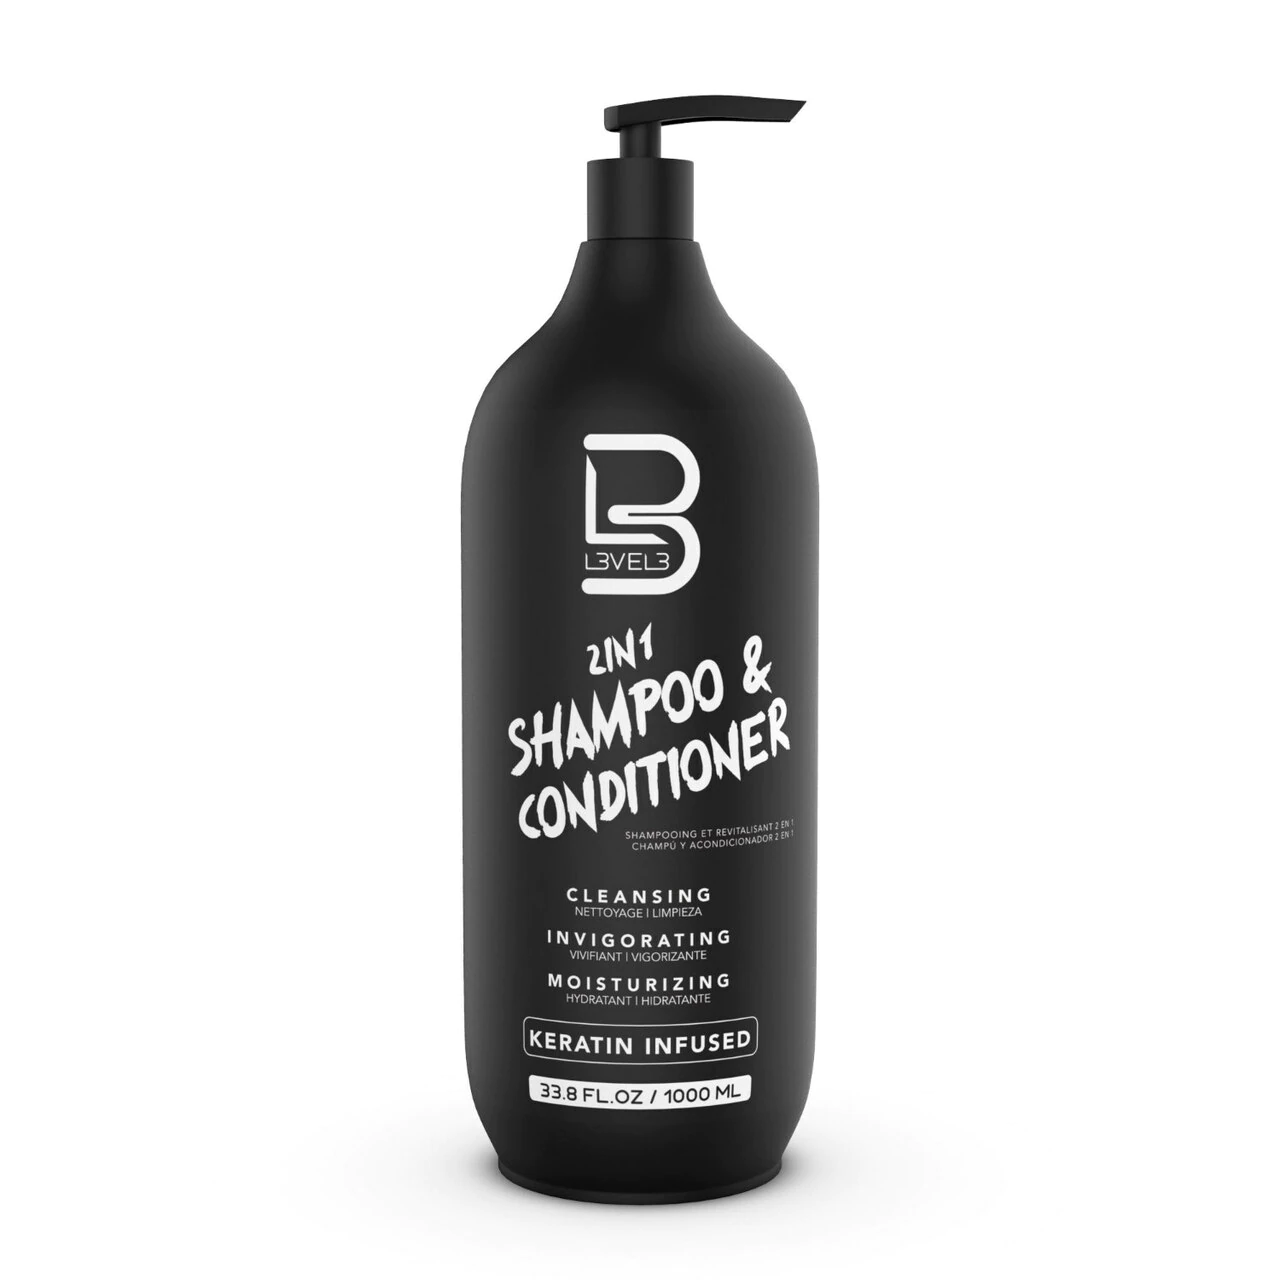 Level3 - 2 in 1 Shampoo and Conditioner